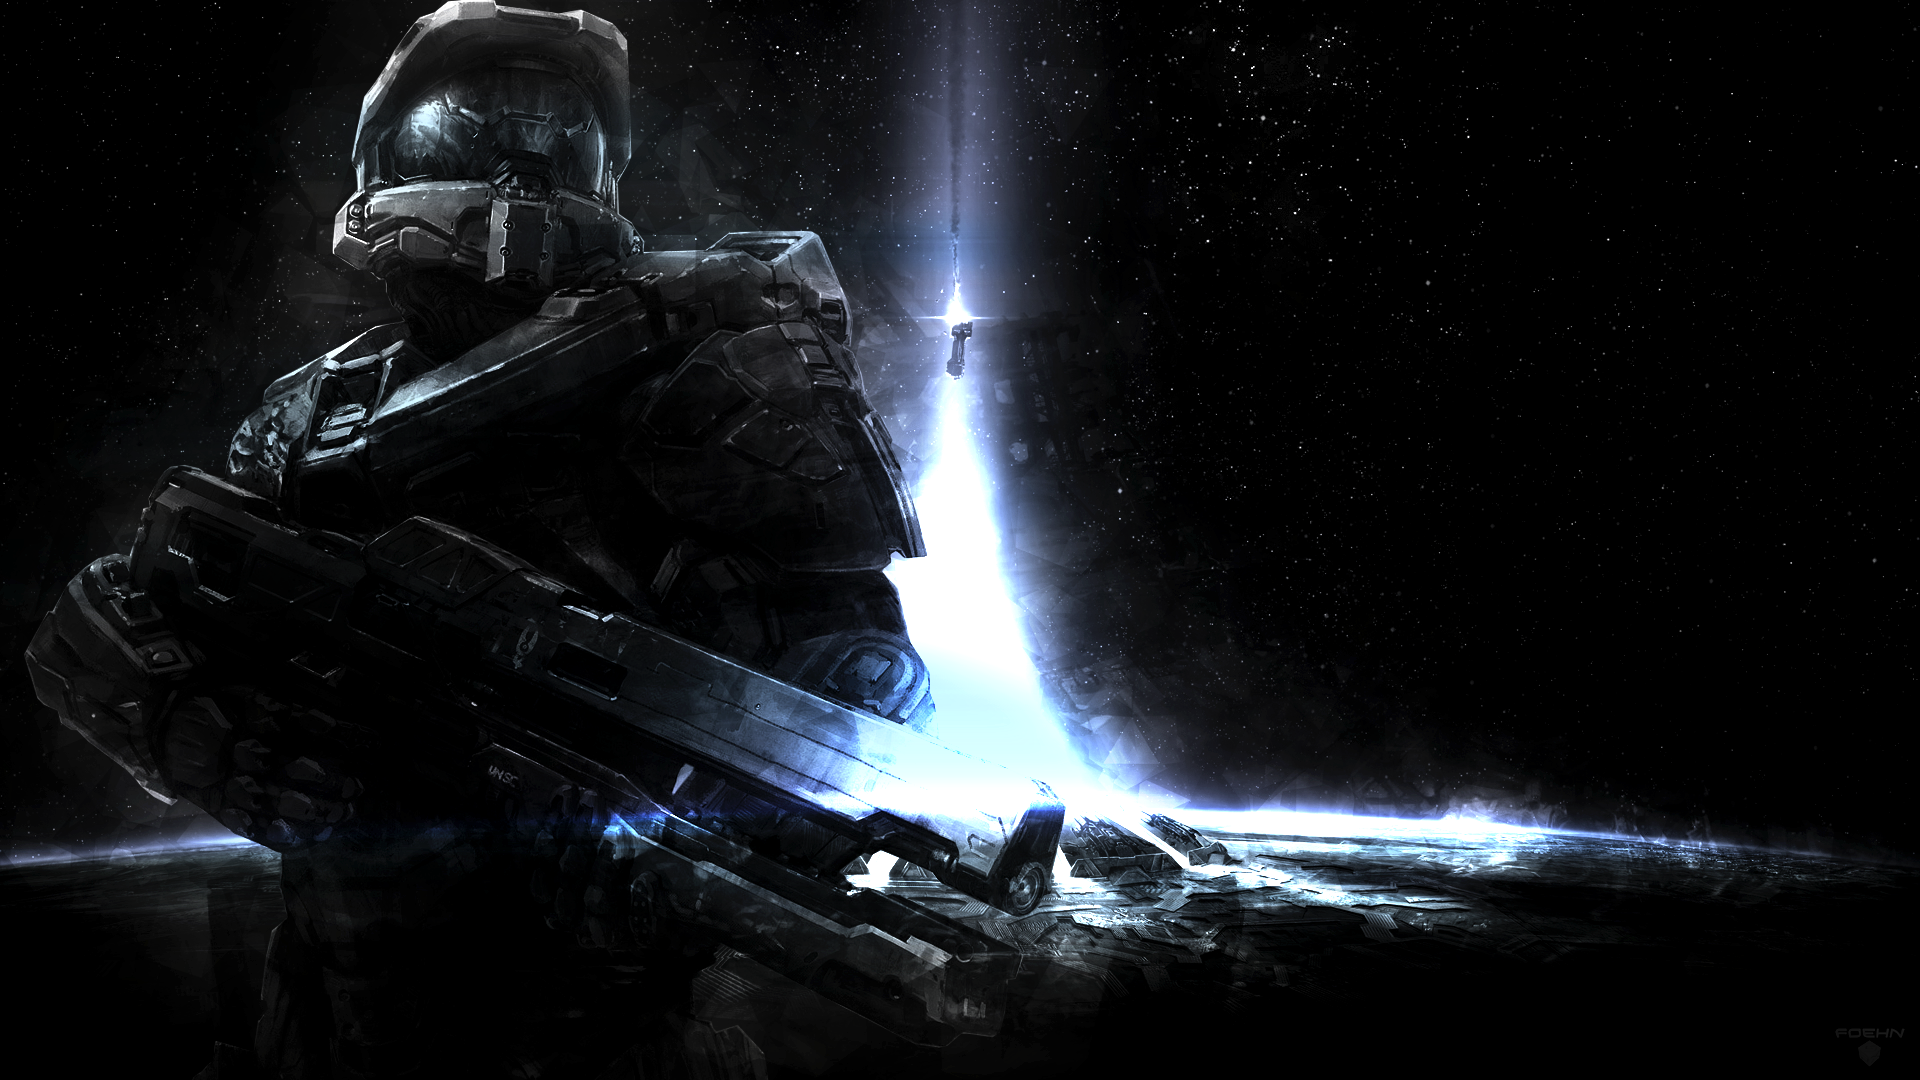 Halo 4 wallpaper | 1920x1080 | #52409